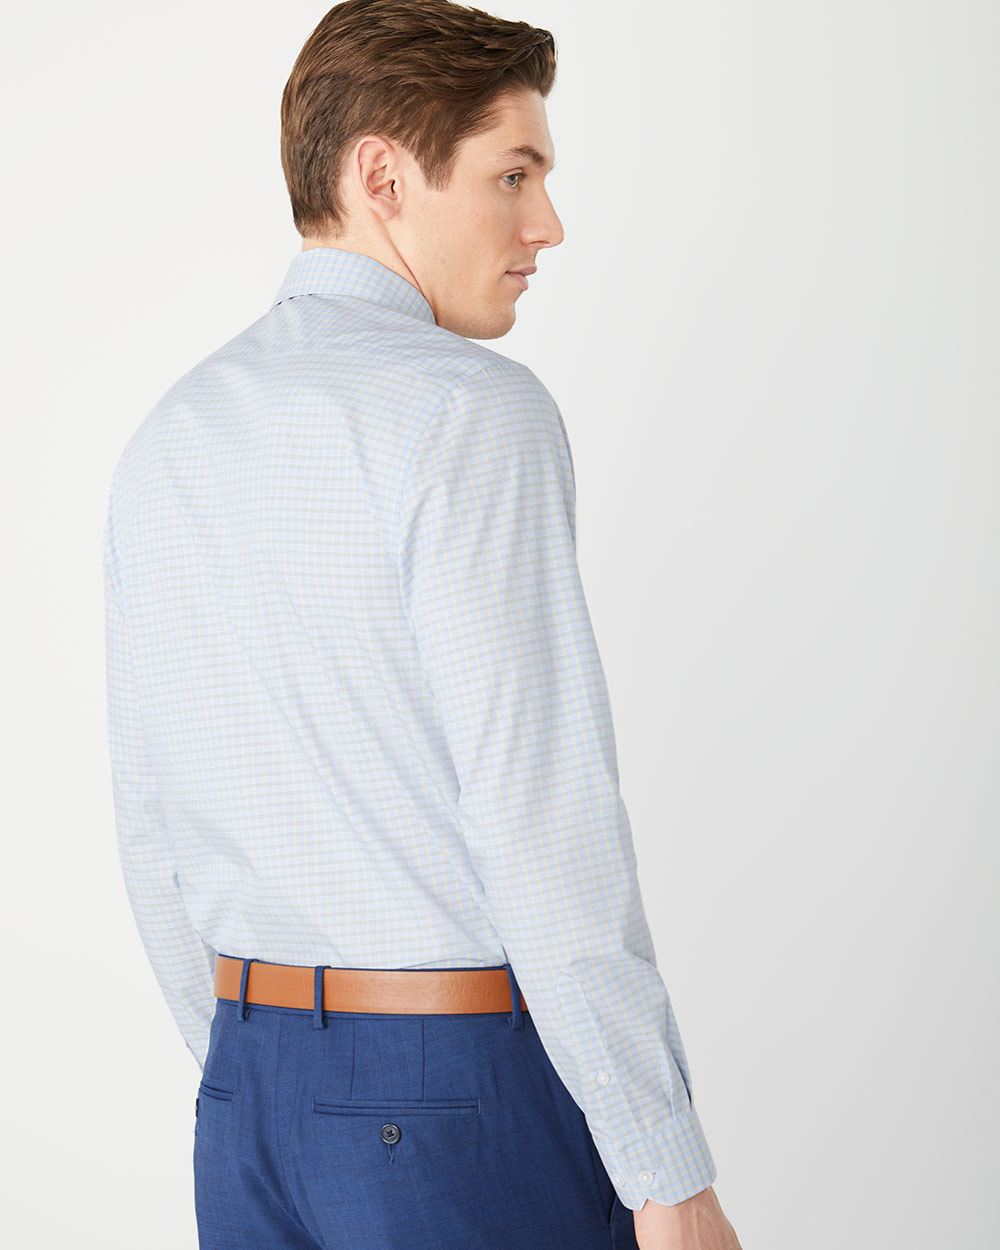 Athletic Fit light blue check Dress Shirt